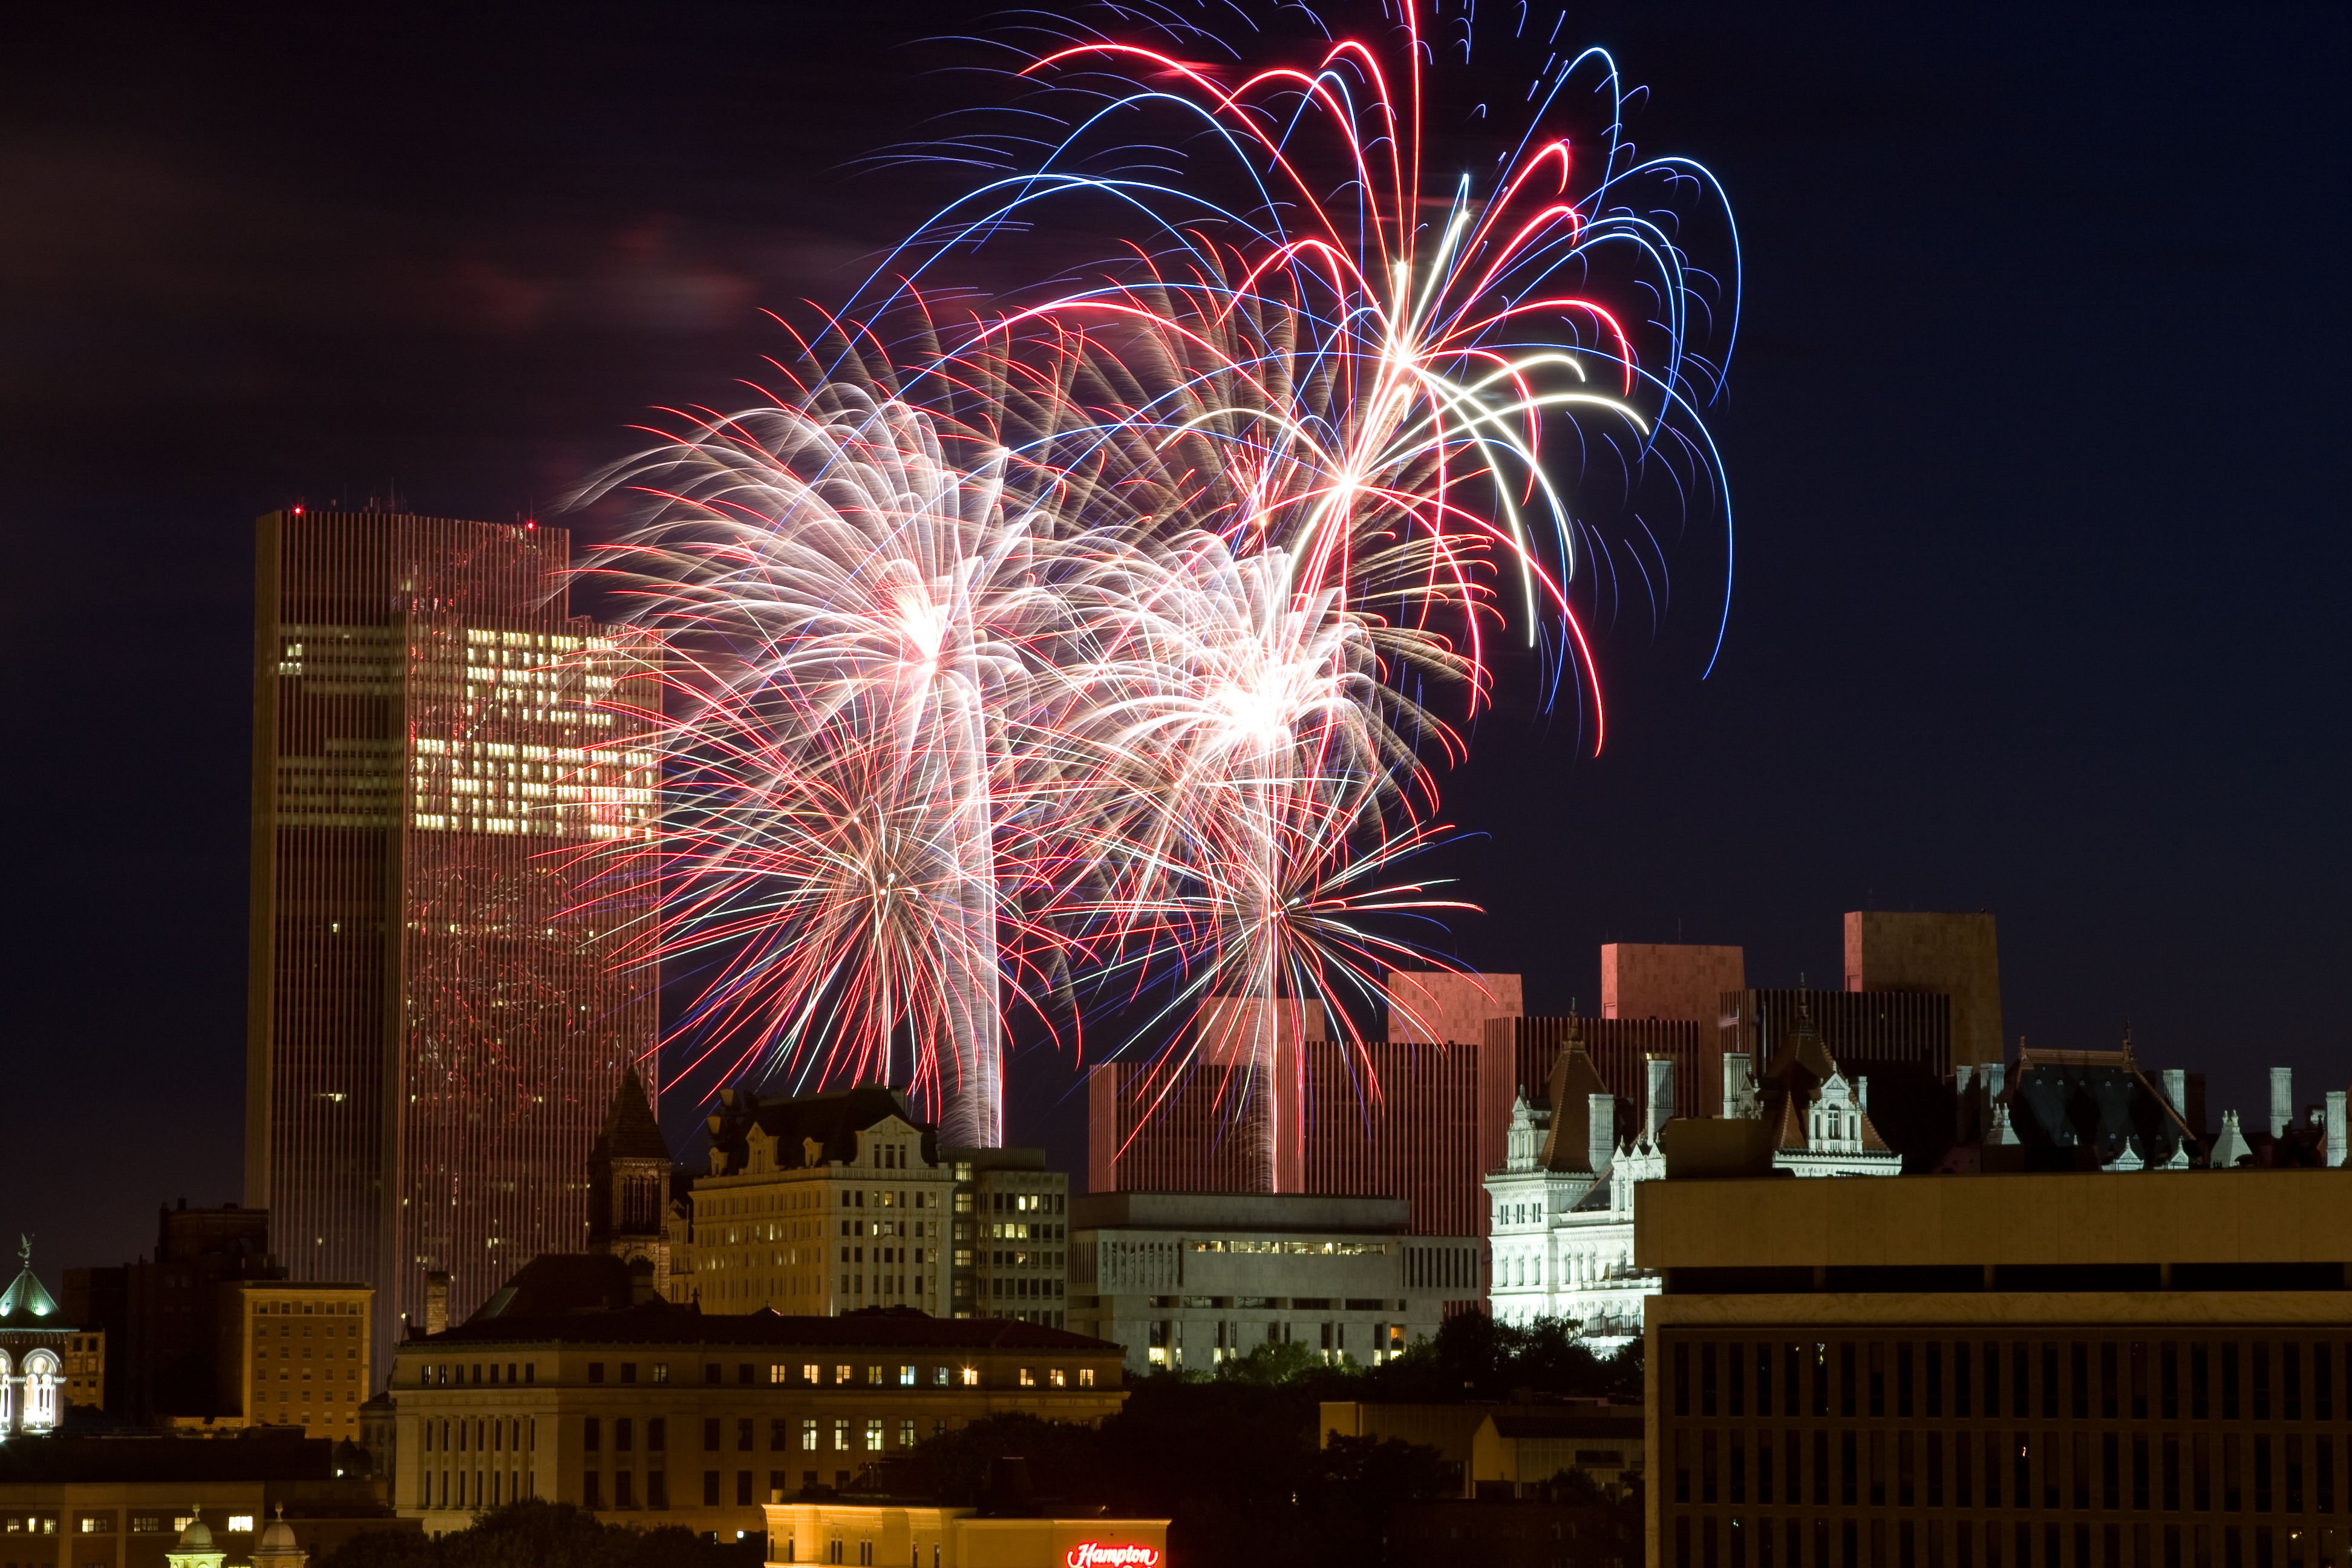 The Best Fireworks Displays In New York In 2016 Cities